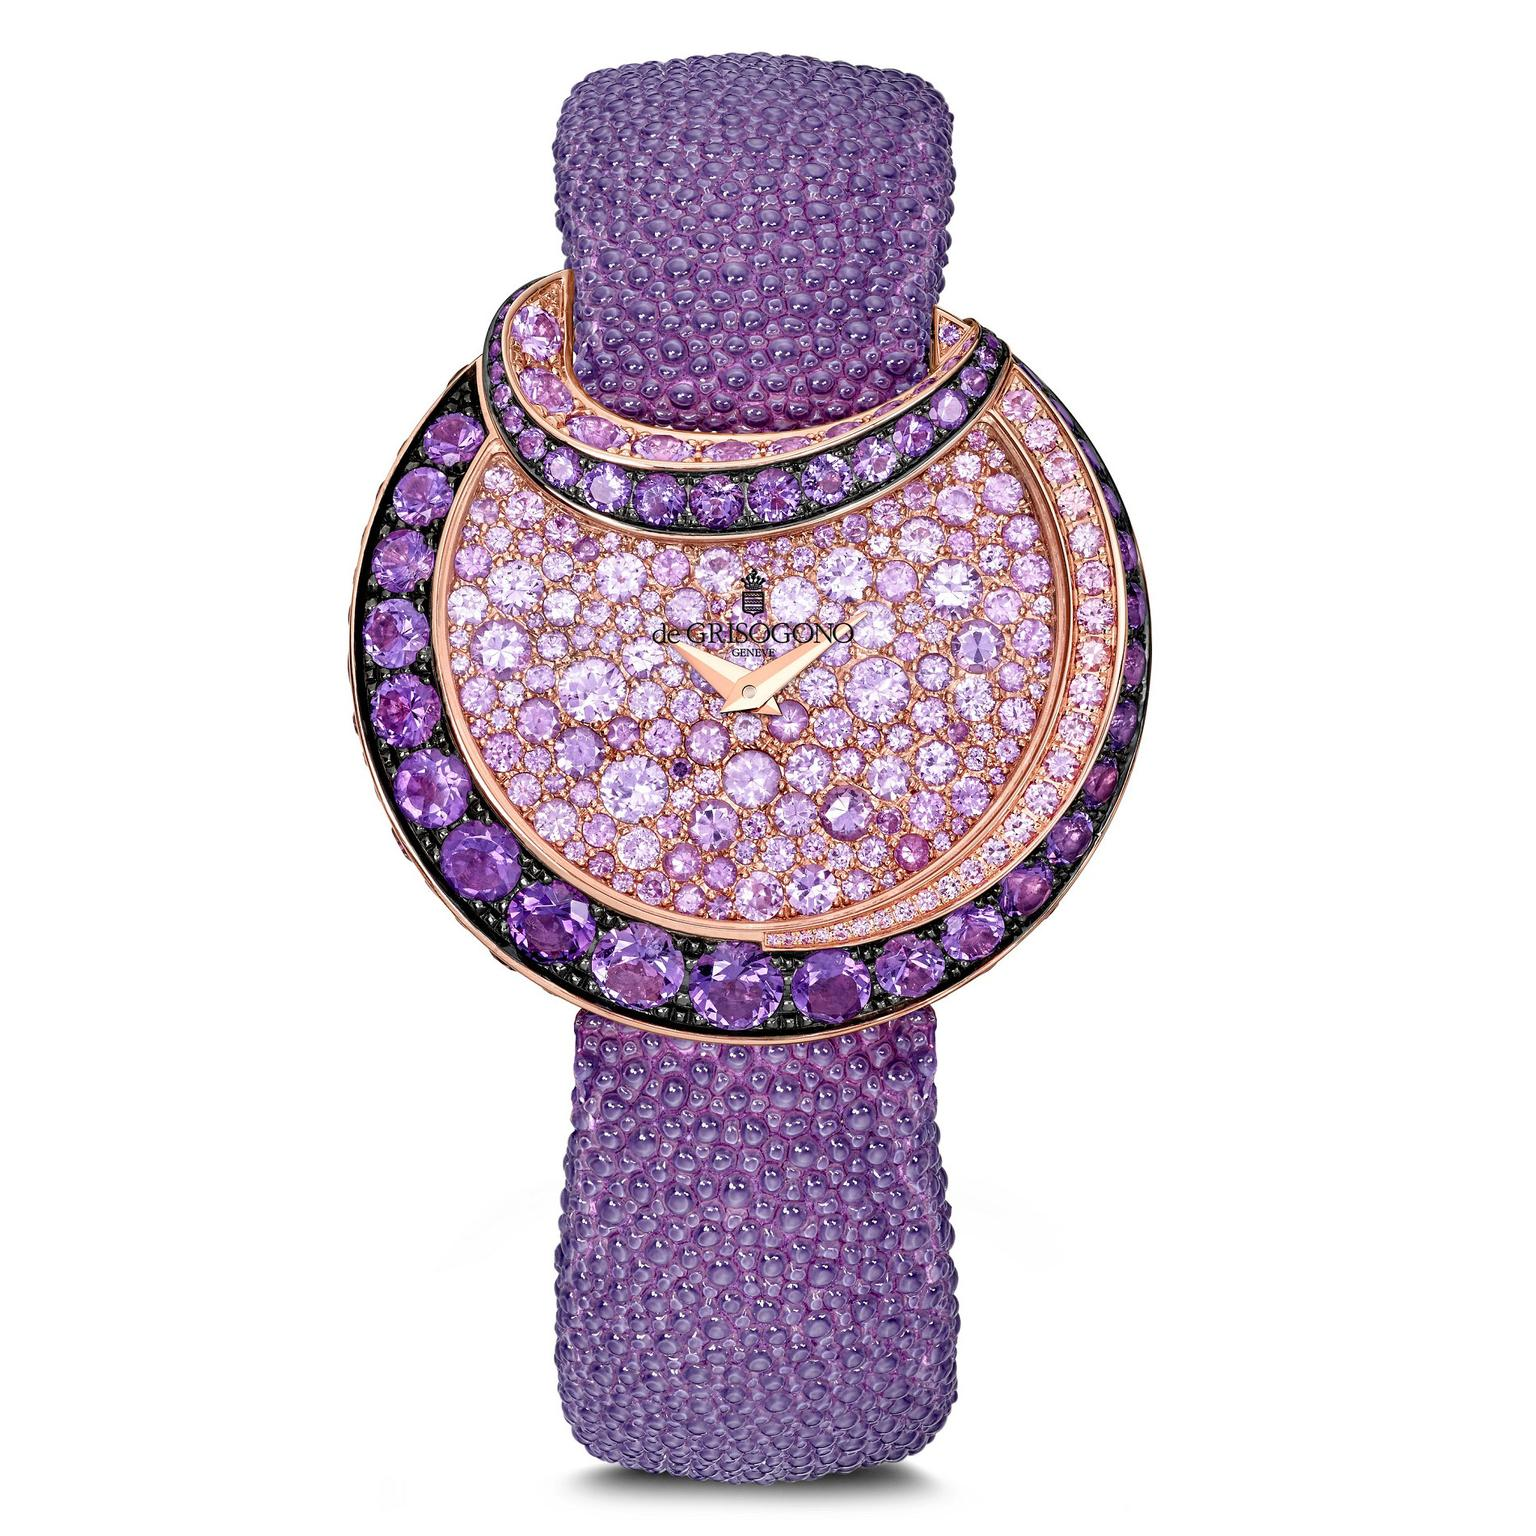 de GRISOGONO Luna watch with amethysts and pink sapphires